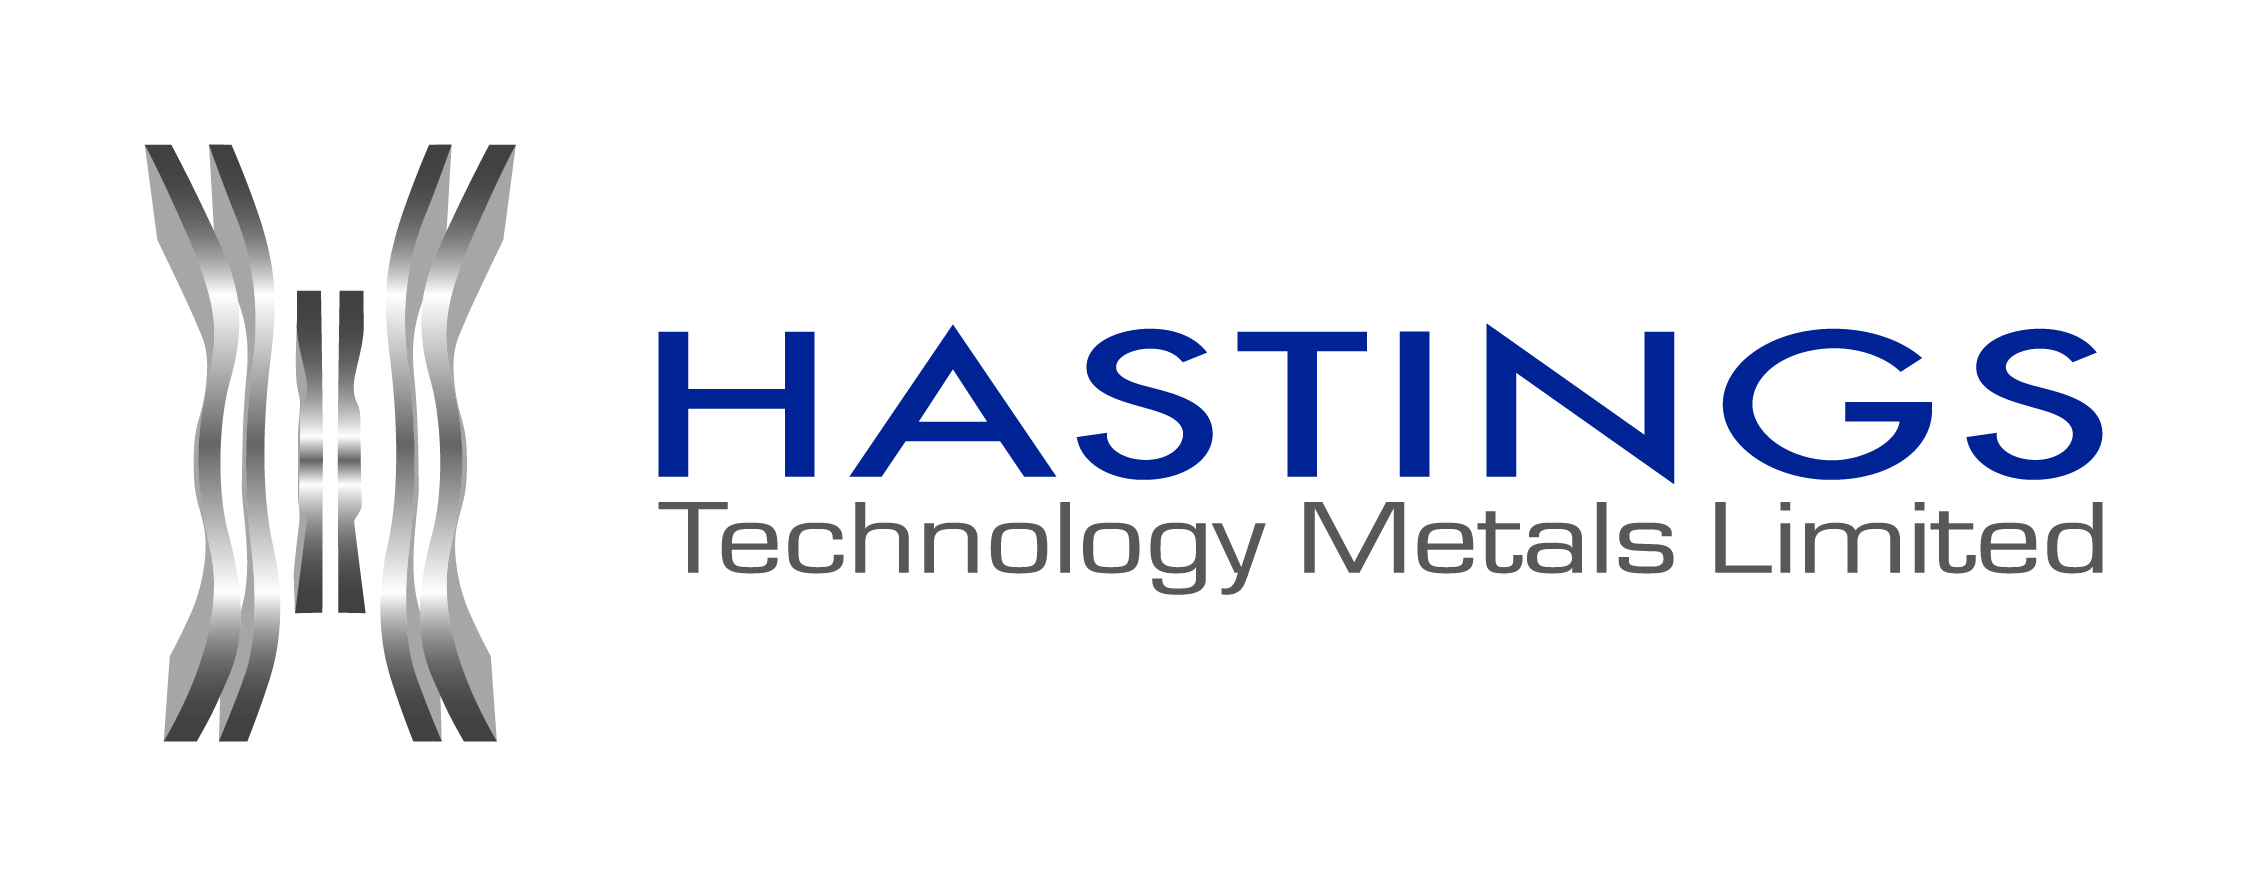 Hastings Technology Metals Limited